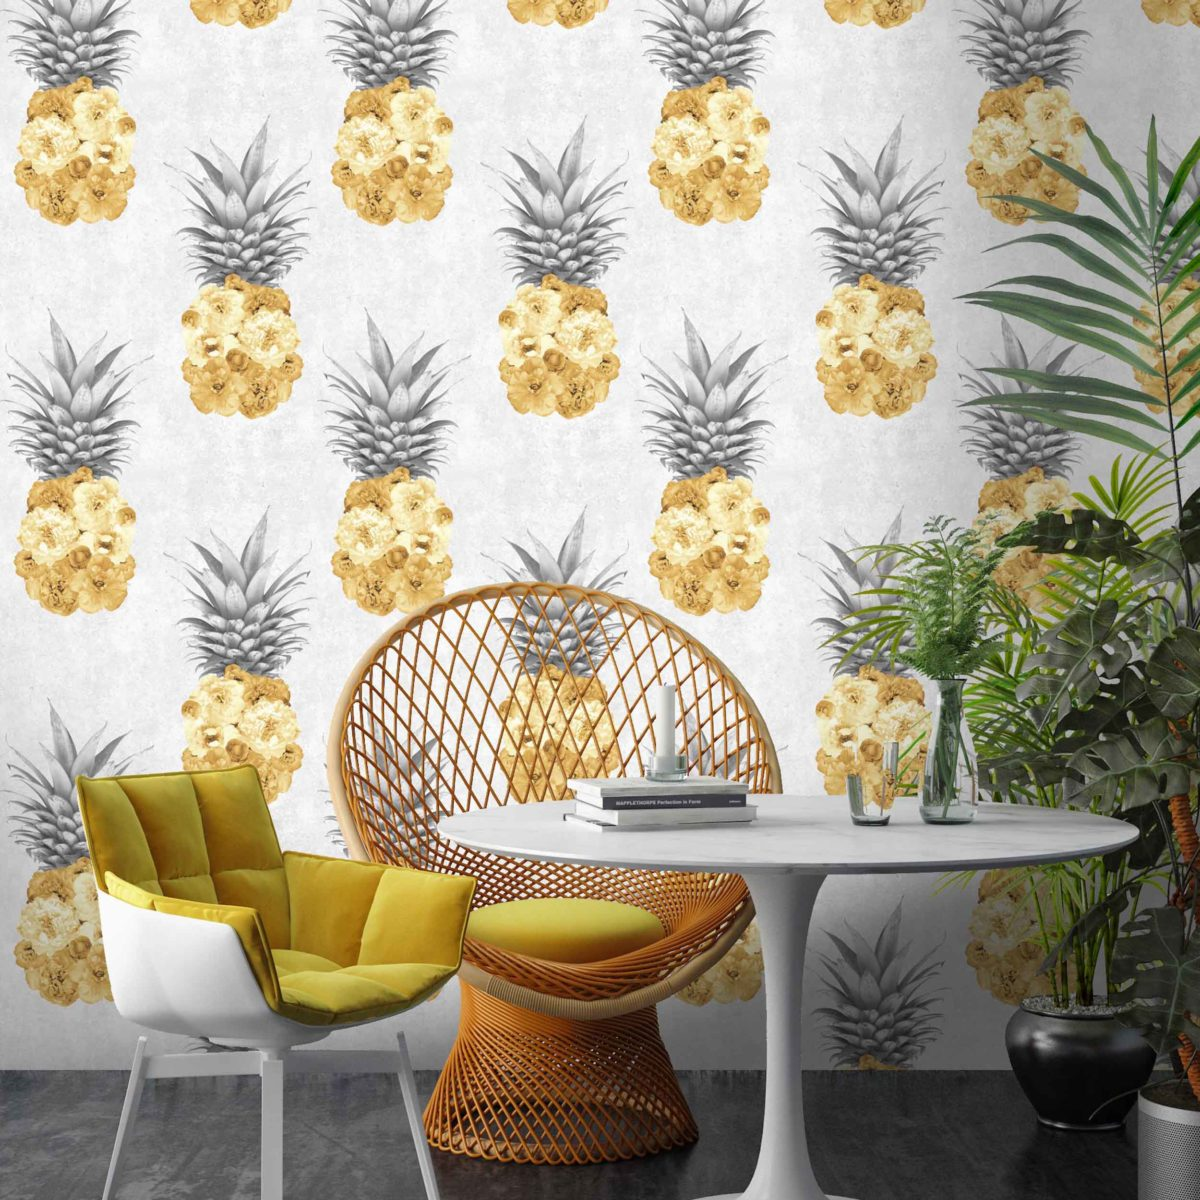 7woodchip-and-magnolia_ludic-yellow-pineapple-wallpaper-1200x1200.jpg